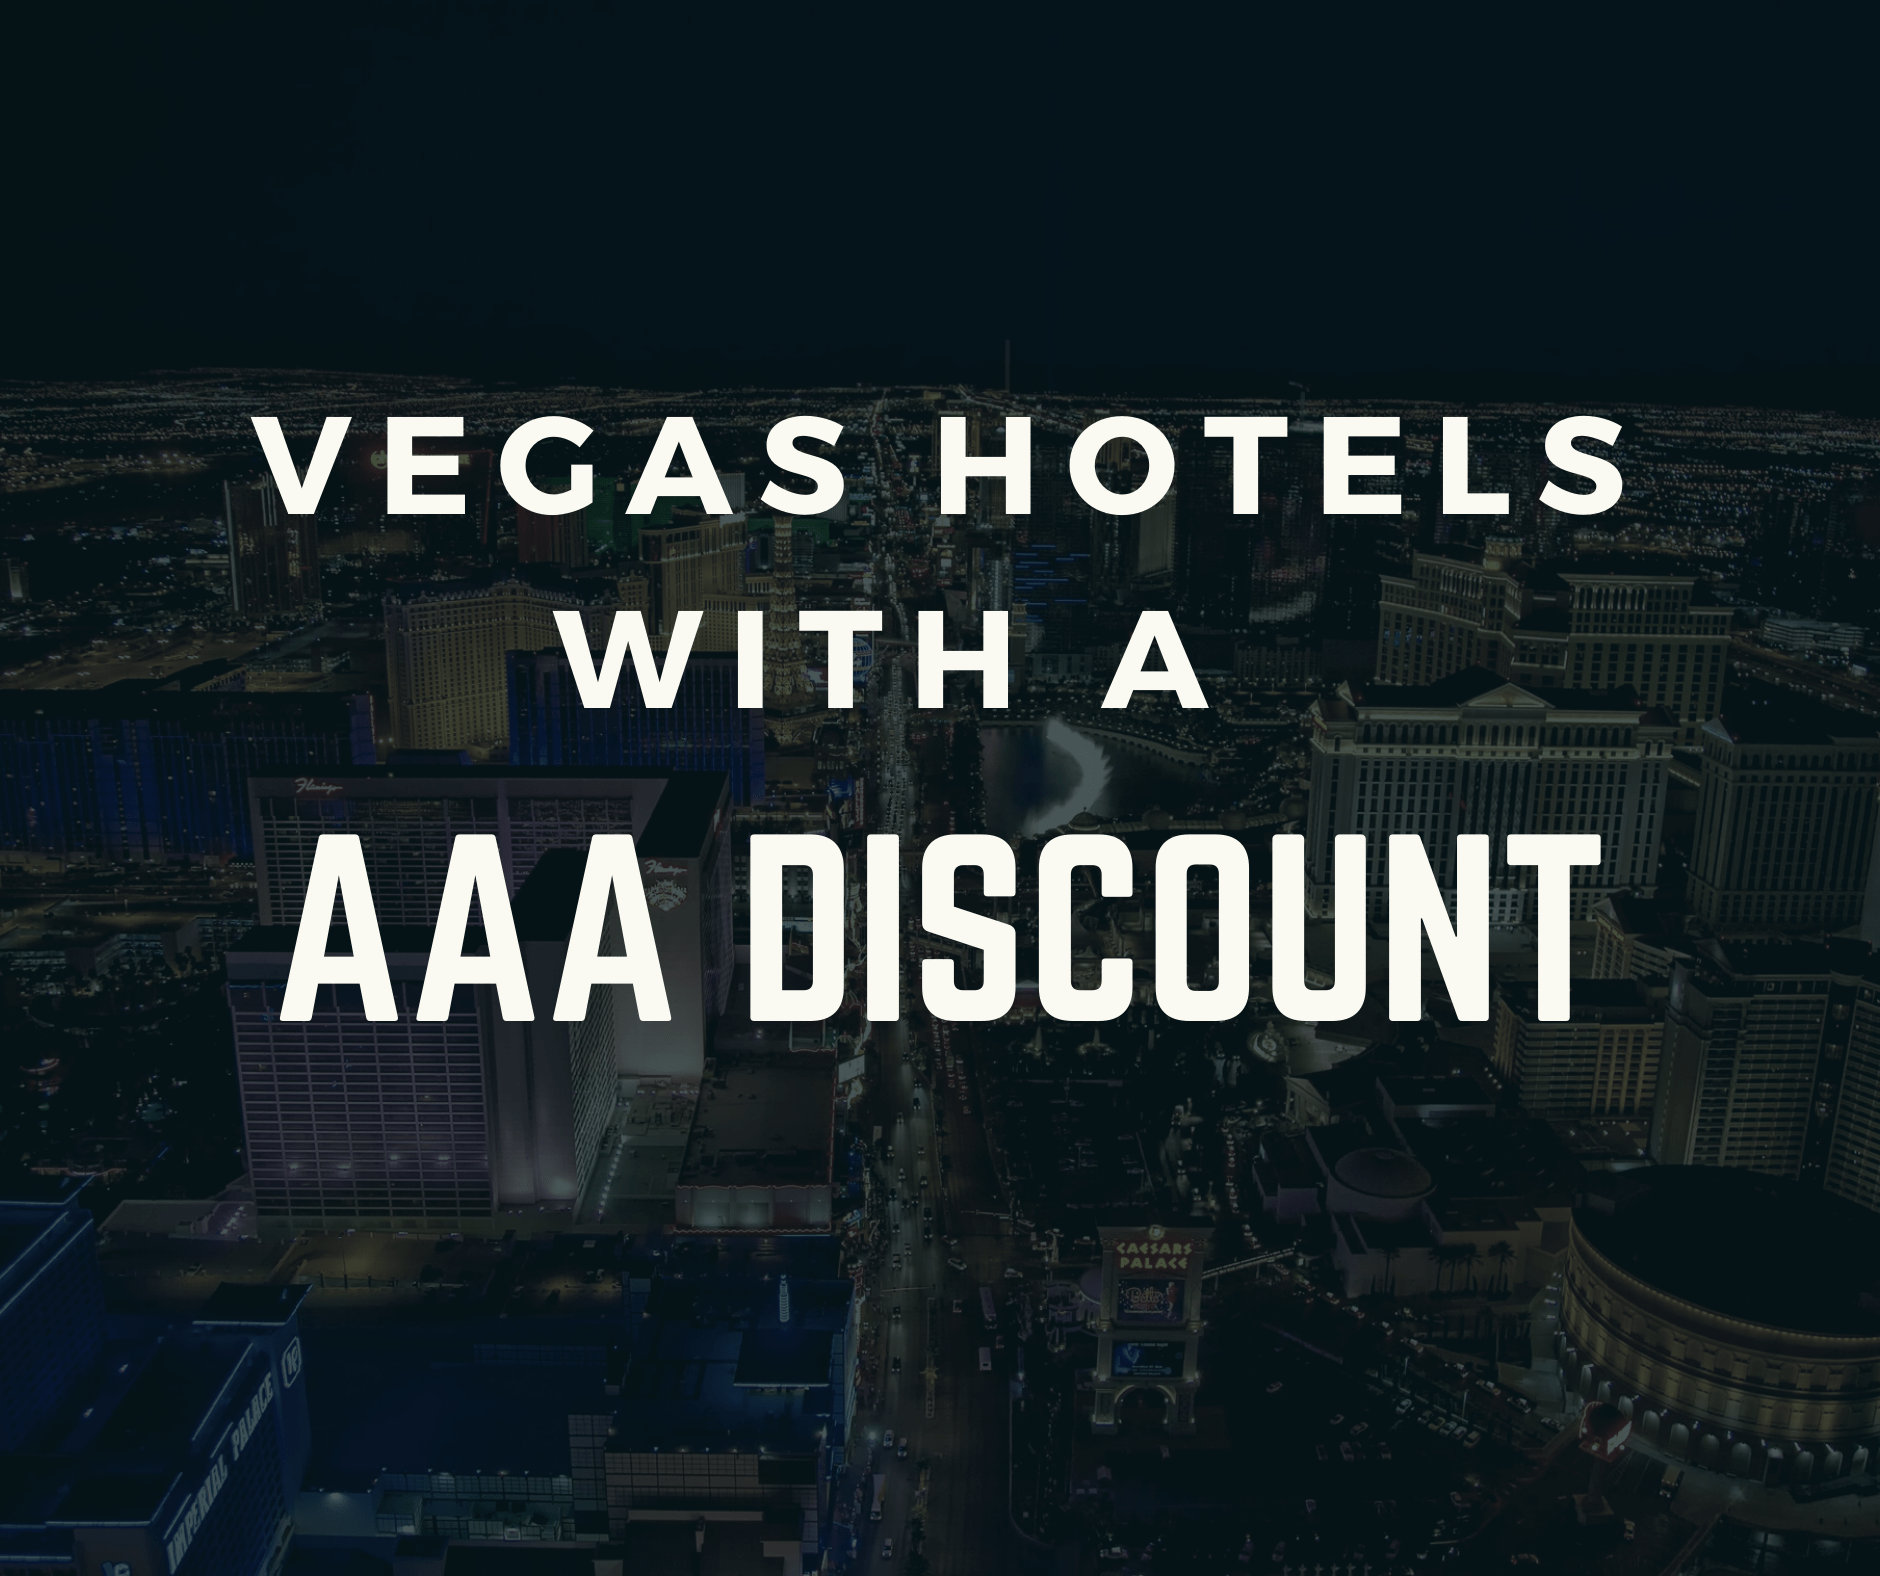 Las Vegas Hotels That Offer a AAA Discount